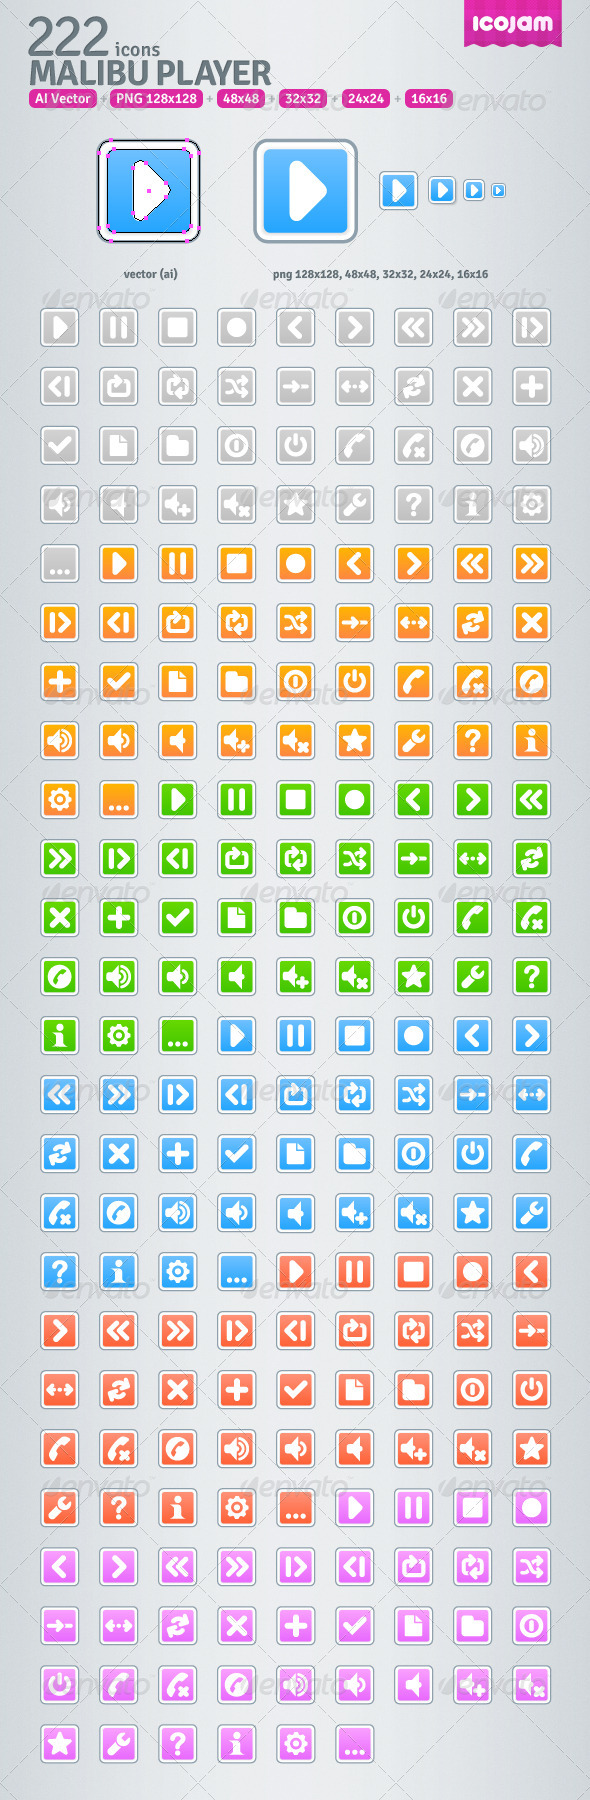 222 AI Malibu Player icons - Media Icons